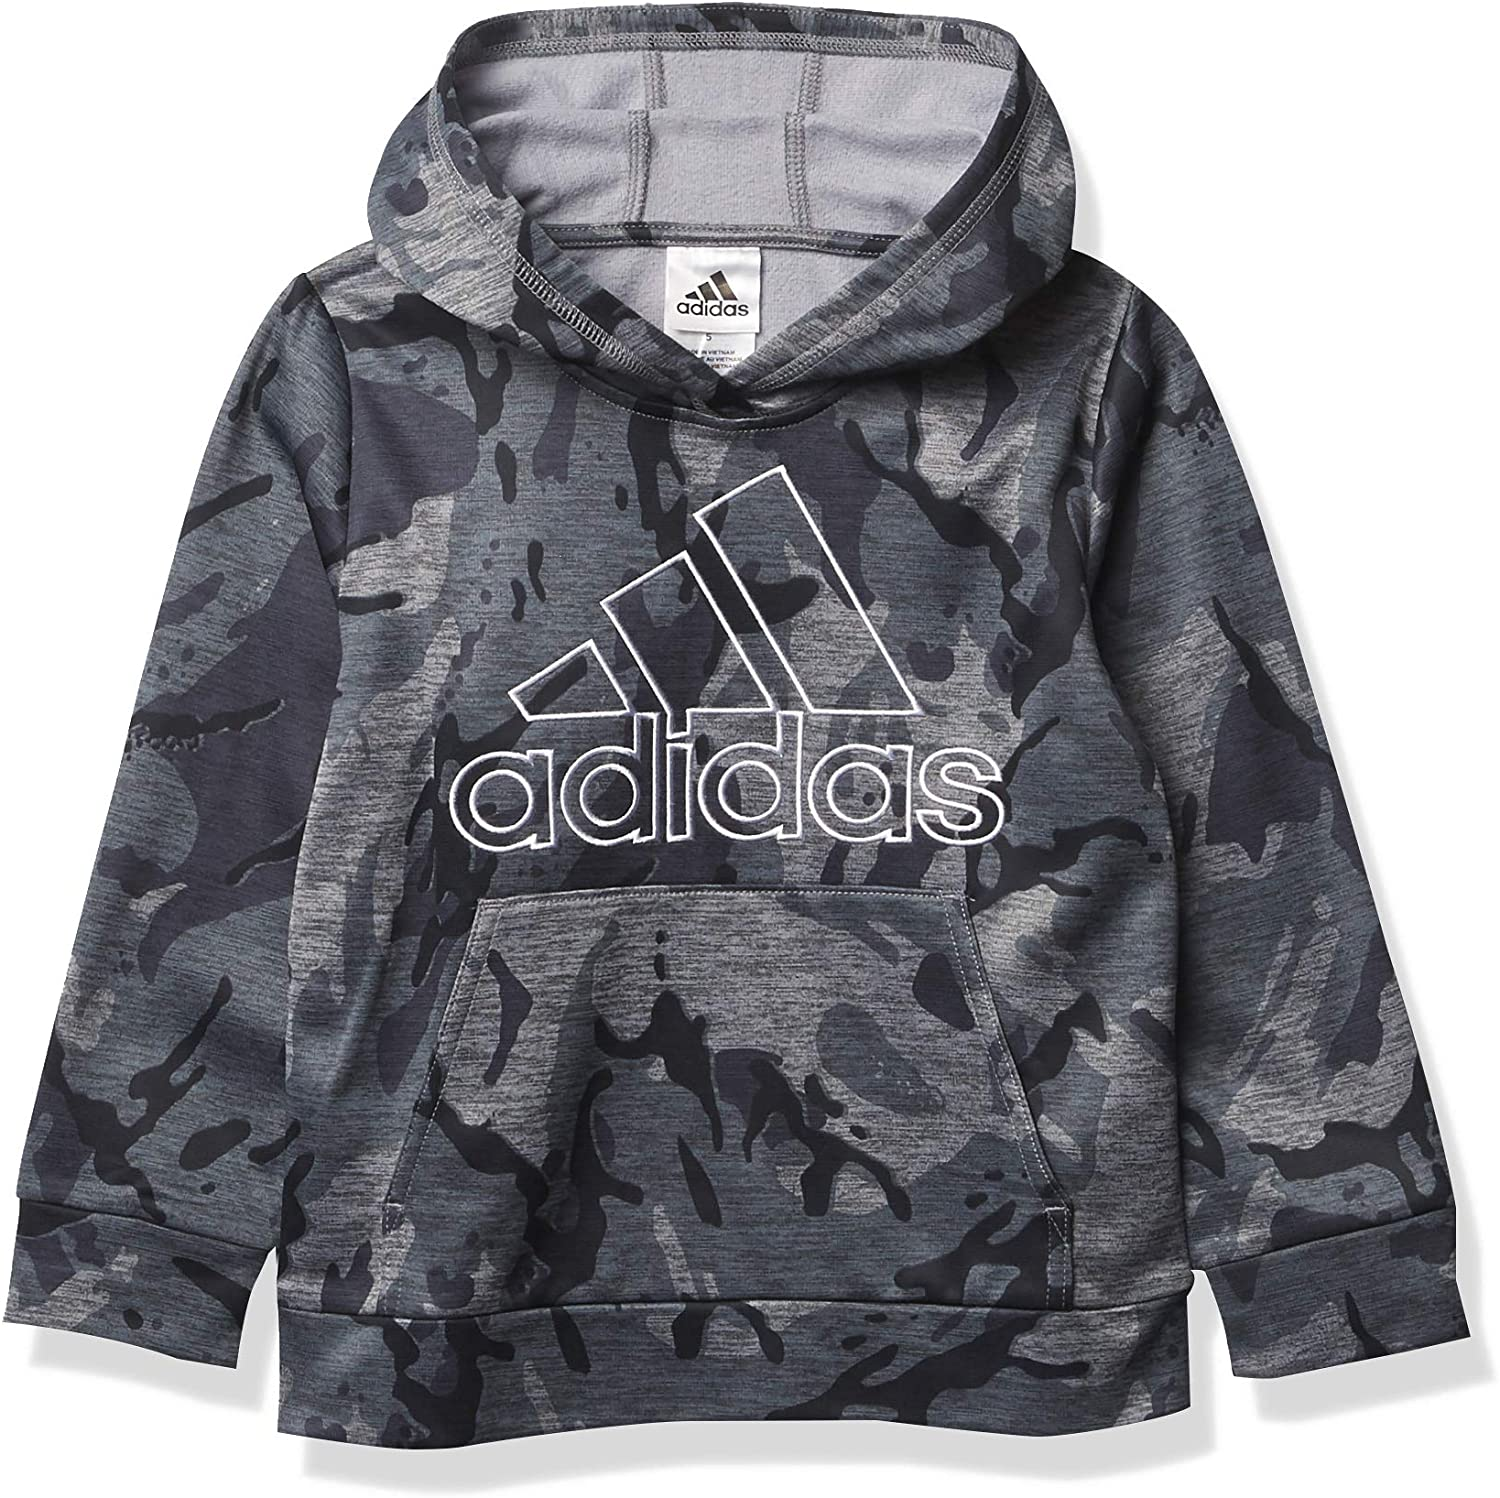 adidas unisex Boys' Active Sport Sweatshirt Free shipping anywhere in the nation Hooded Pullover Athletic